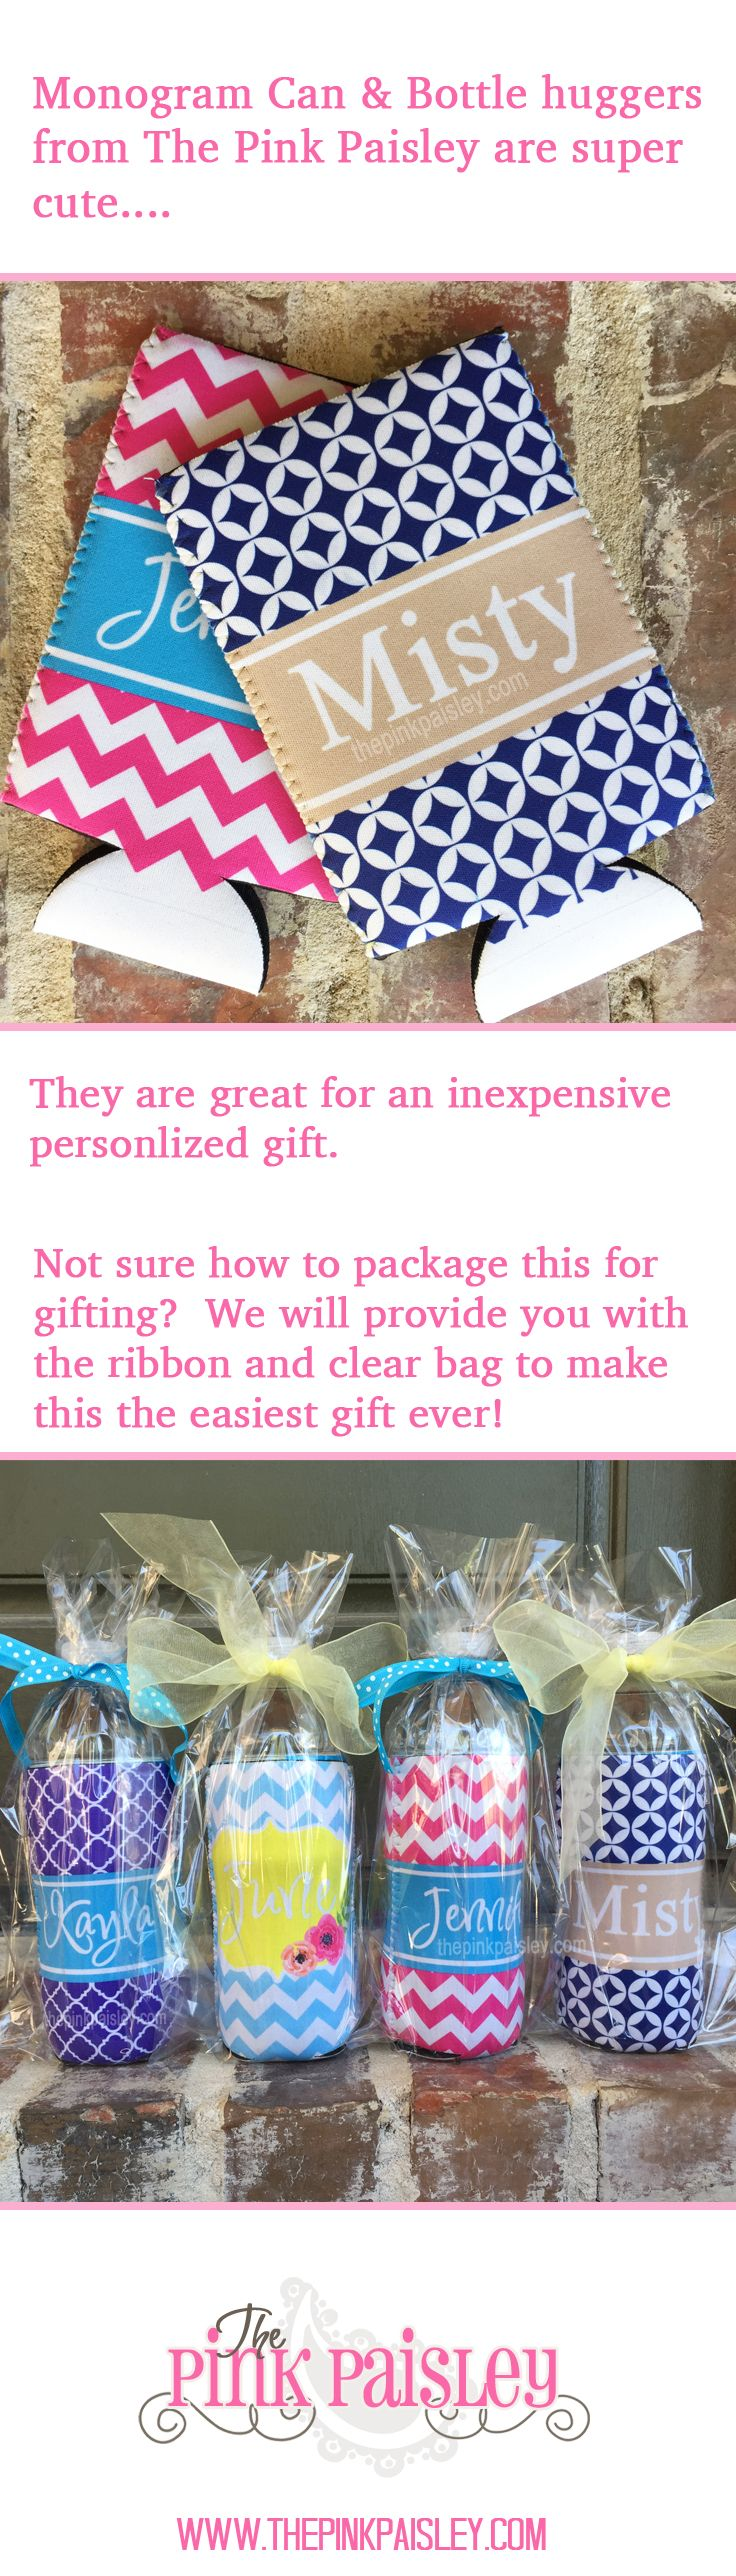 Cute gift idea from The Pink Paisley! http://www.thepinkpaisley.com/gifts-and-accessories/koozies-and-sports-bottles/